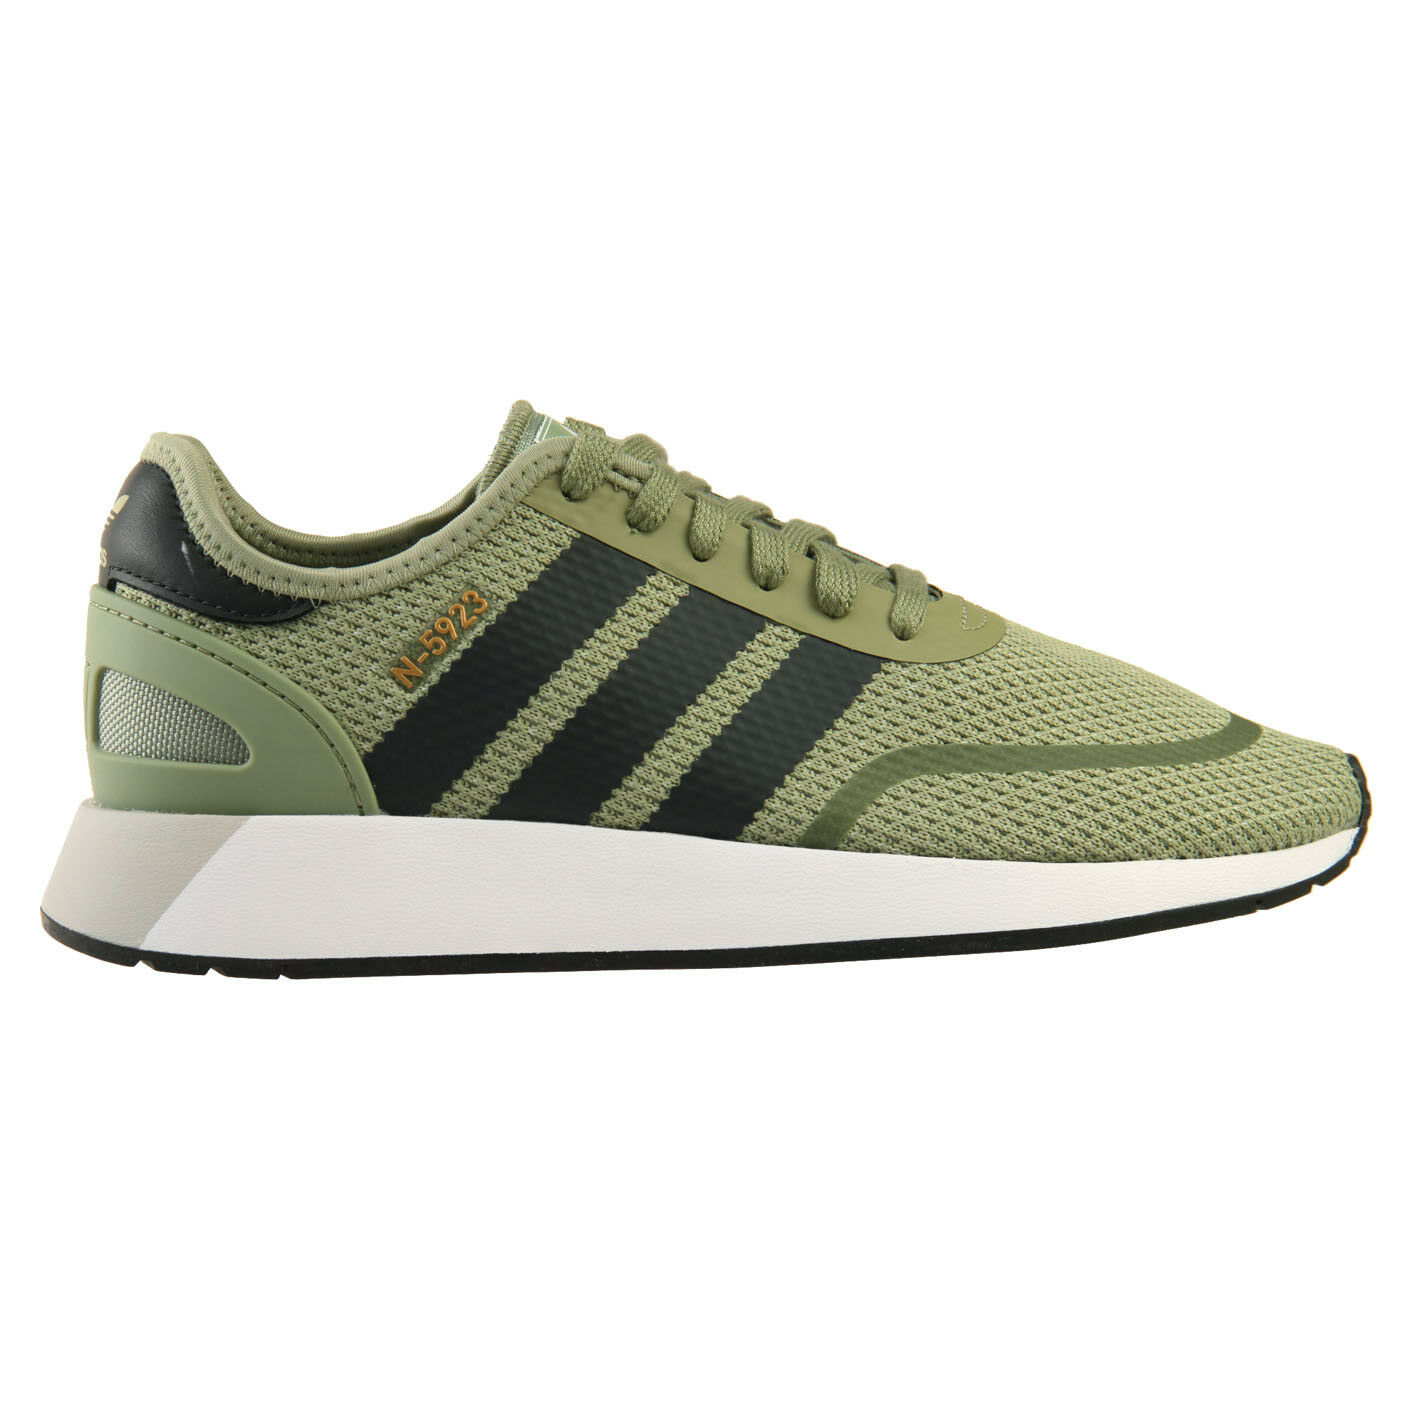 Adidas N-5923 Uomo DB0959 Tent Green Carbon White Running Shoes Size 7.5